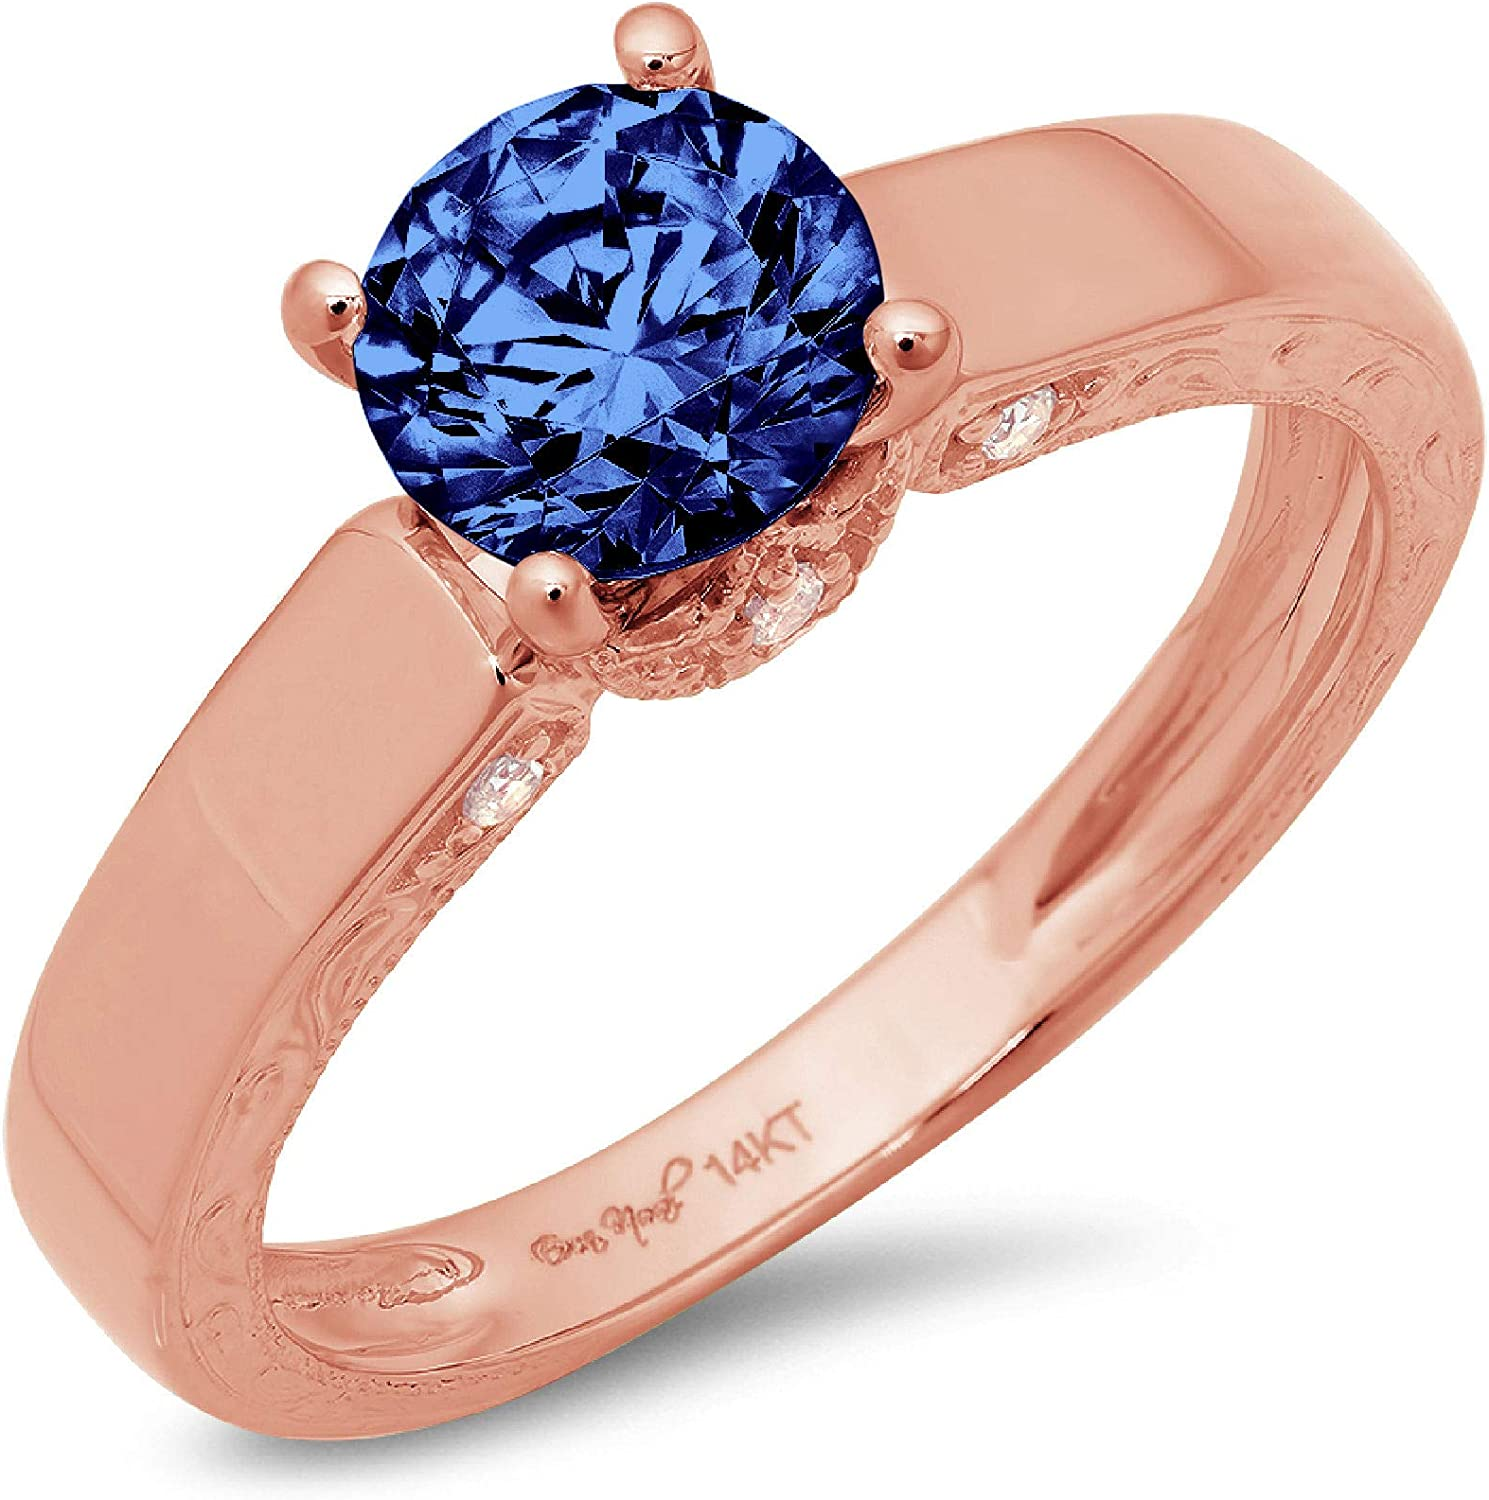 1.70ct Brilliant Round Cut Solitaire Flawless Simulated Blue Tanzanite Ideal Engagement Promise Anniversary Bridal Wedding with accent Designer Ring 14k Rose Gold